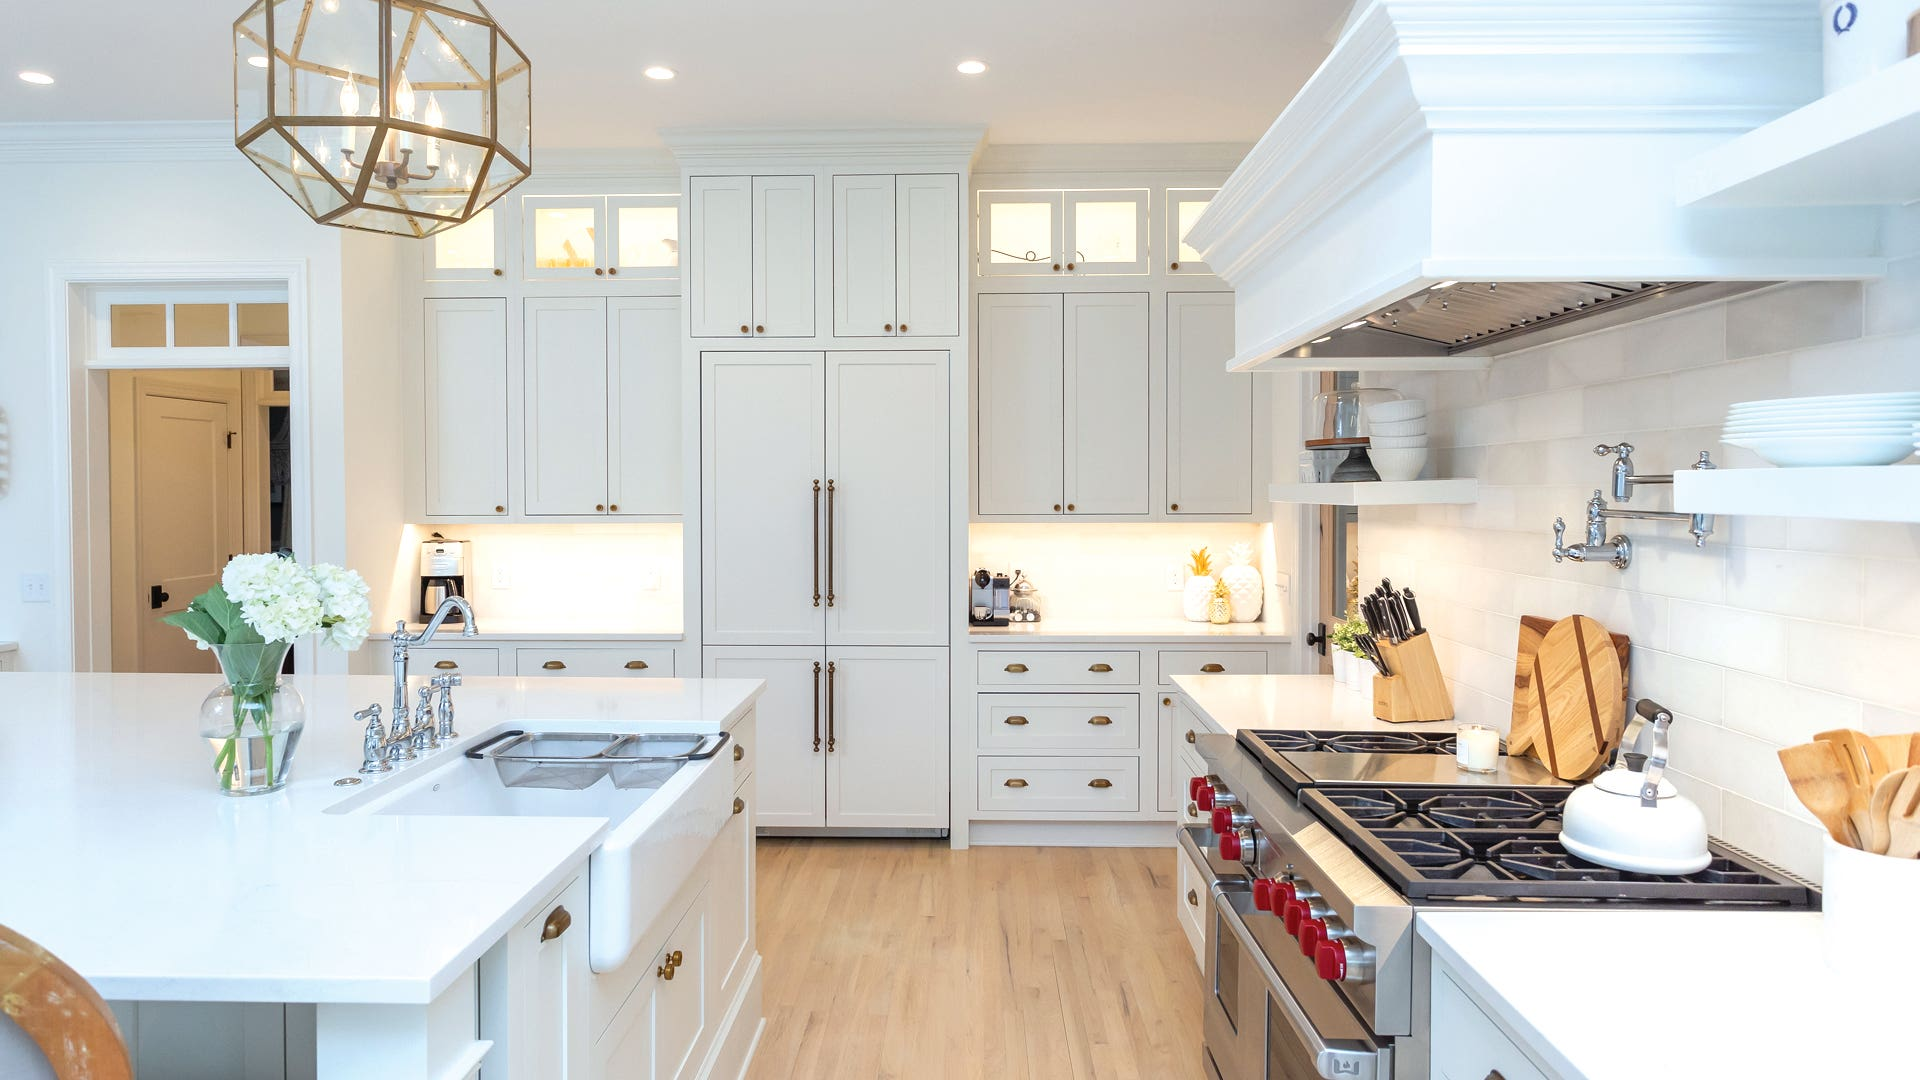 Signature Line Austin Inset Cabinets in White